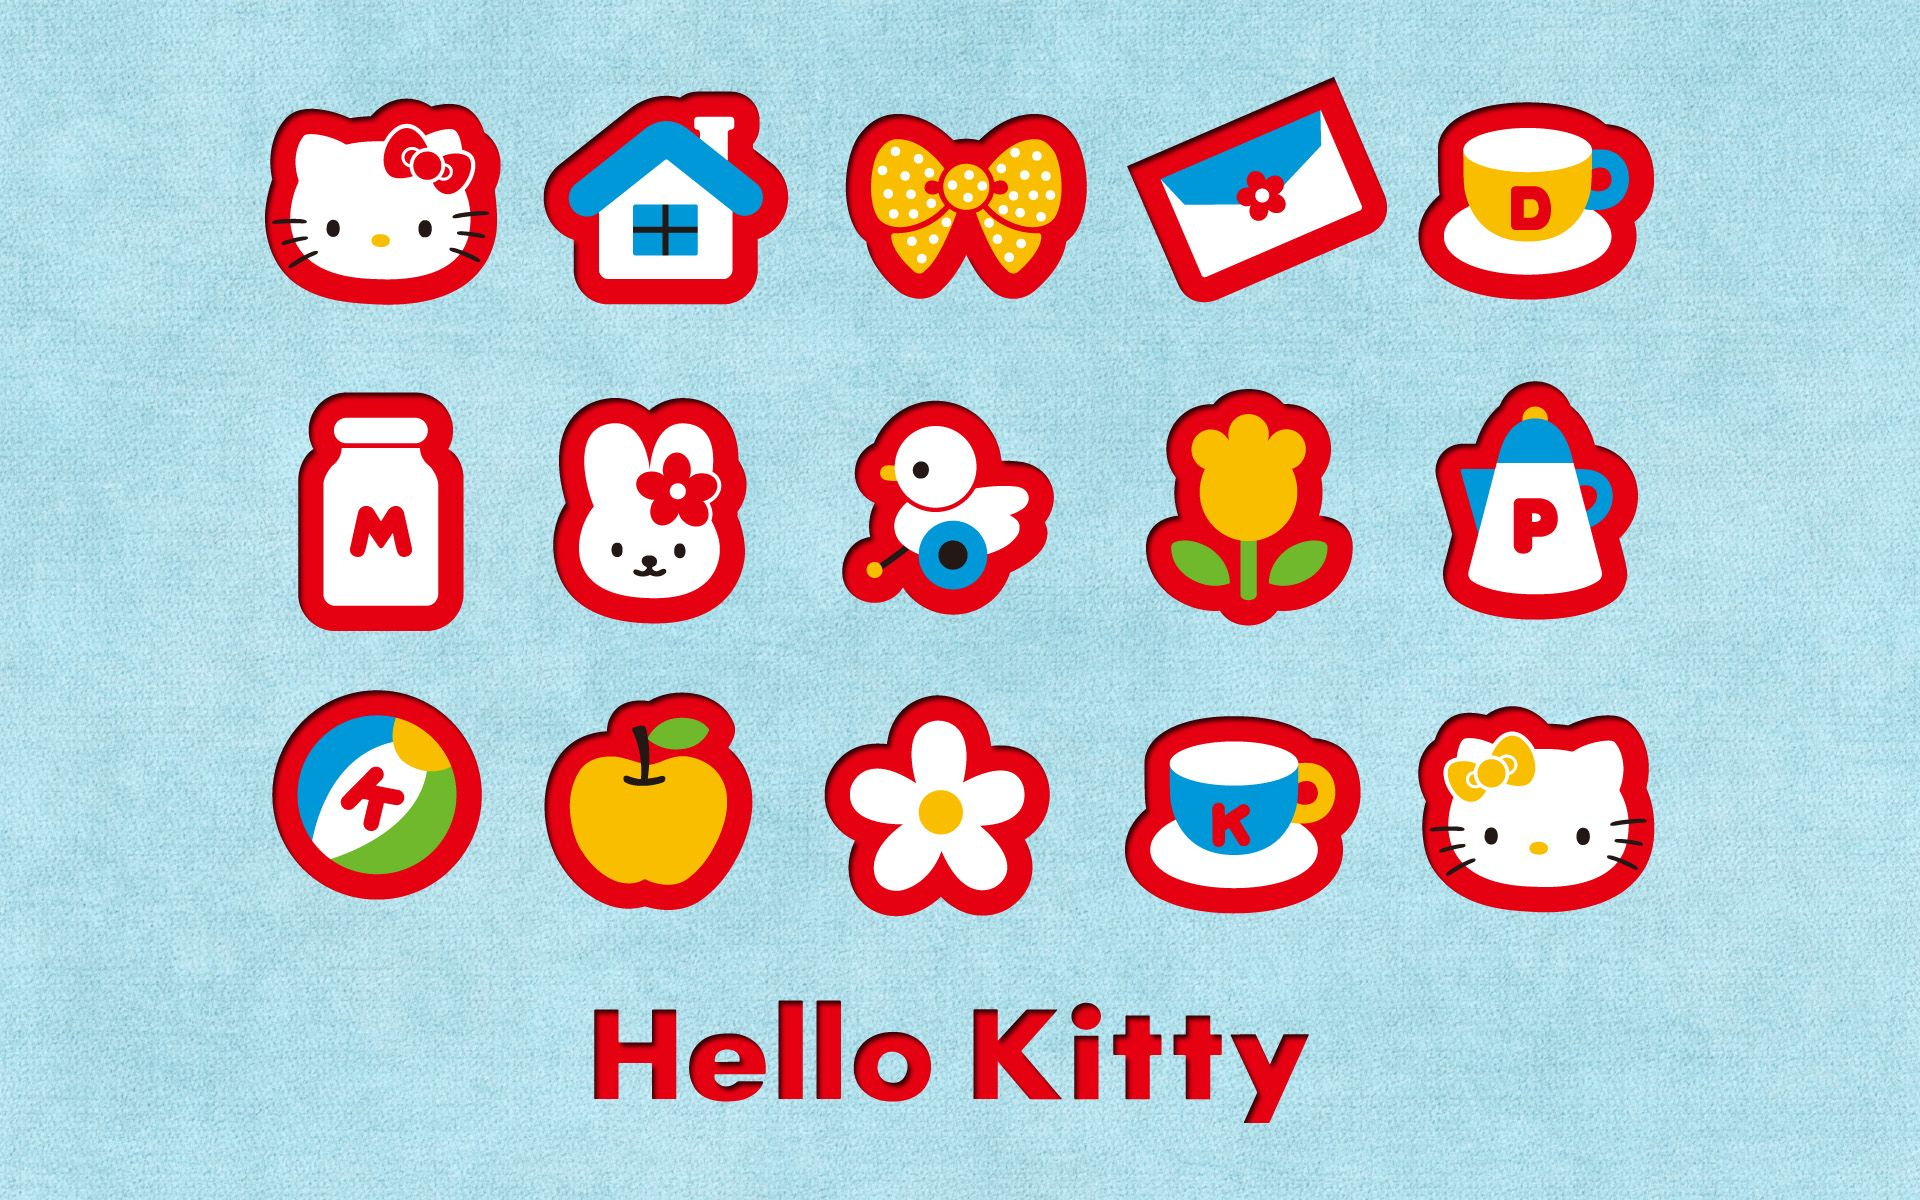 Simple Wallpaper Hello Kitty Thanksgiving - e9bd94904502b6dde054df56584d38b5  Collection_5610032.jpg